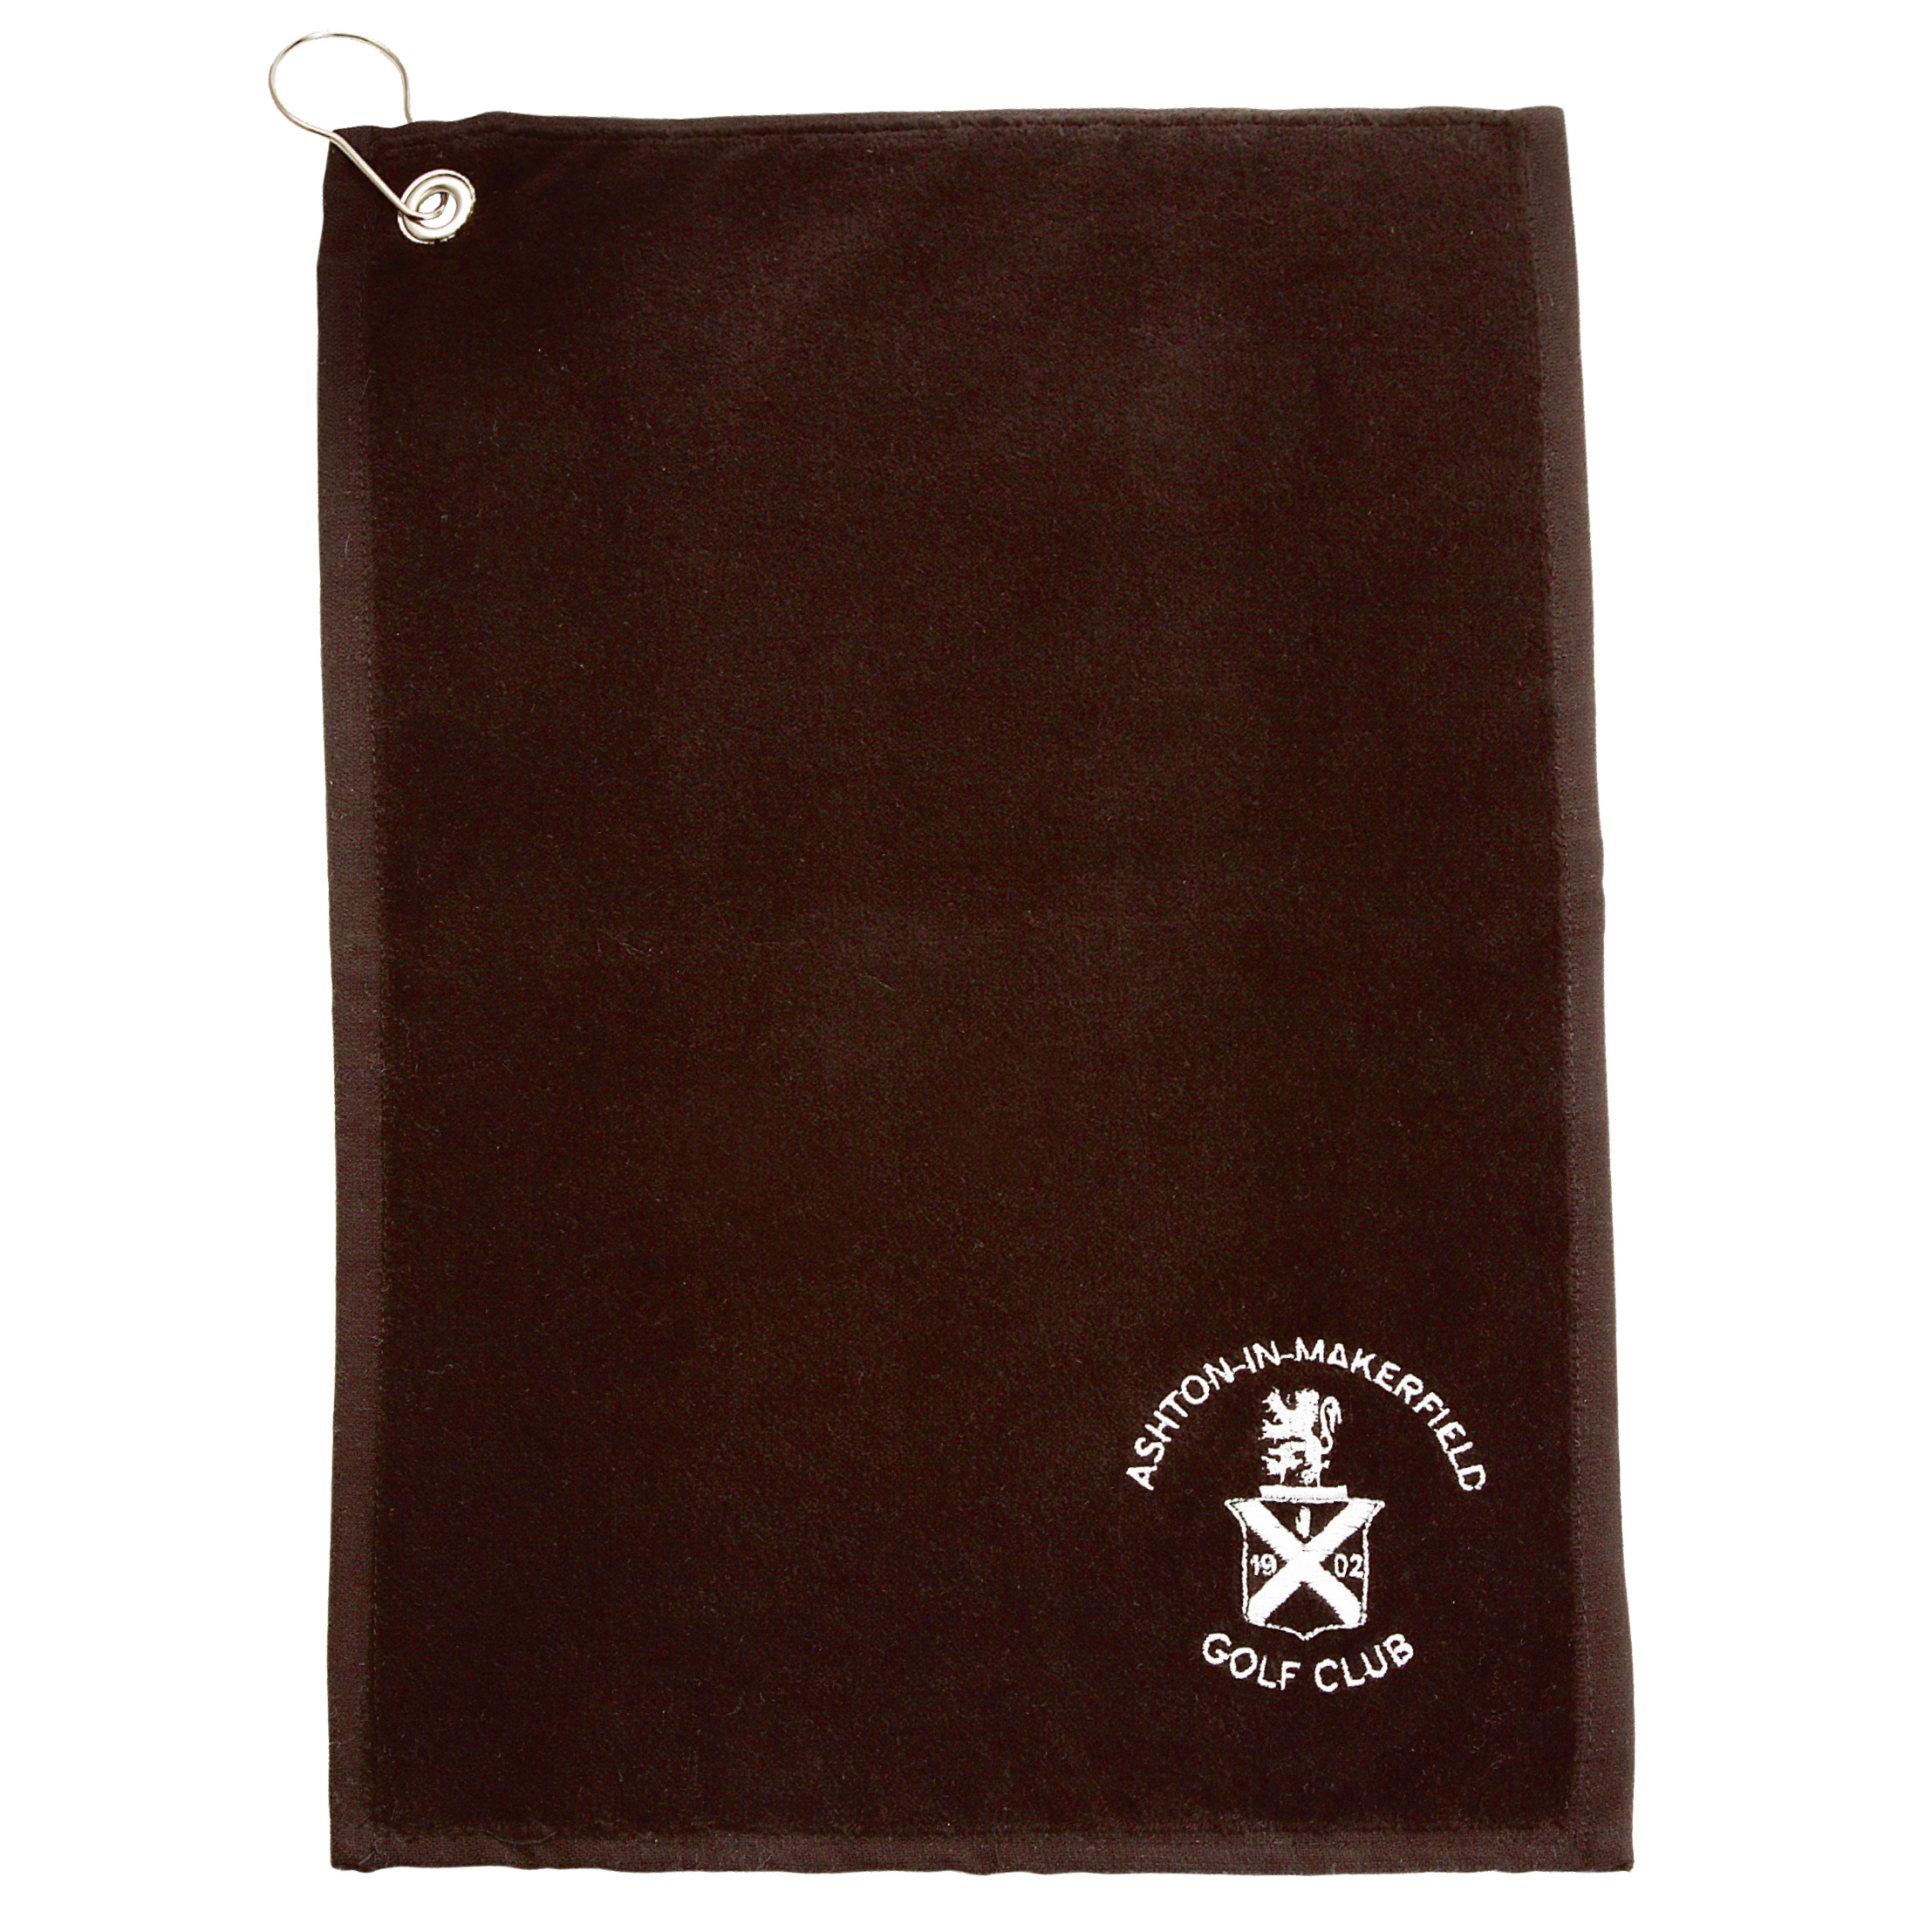 CAMBRIDGE VELOUR TOWEL